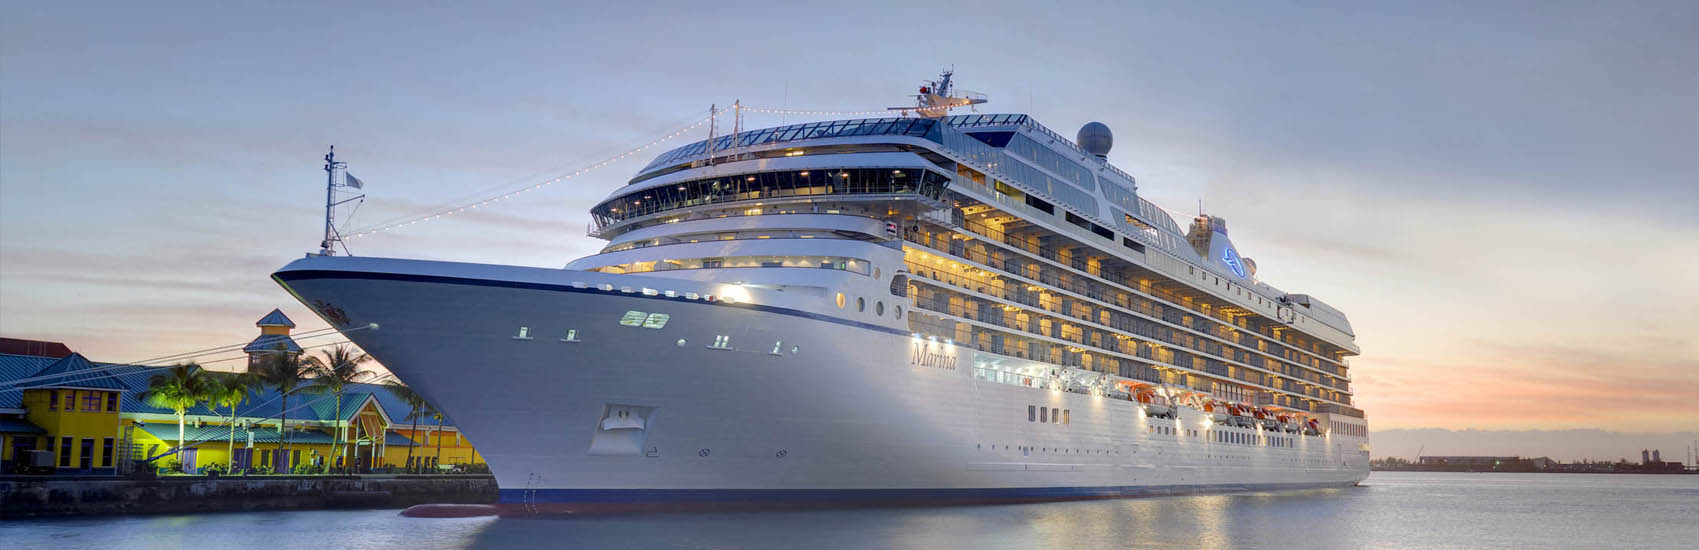 Choose Your Caribbean Adventure with Oceania Cruises 3